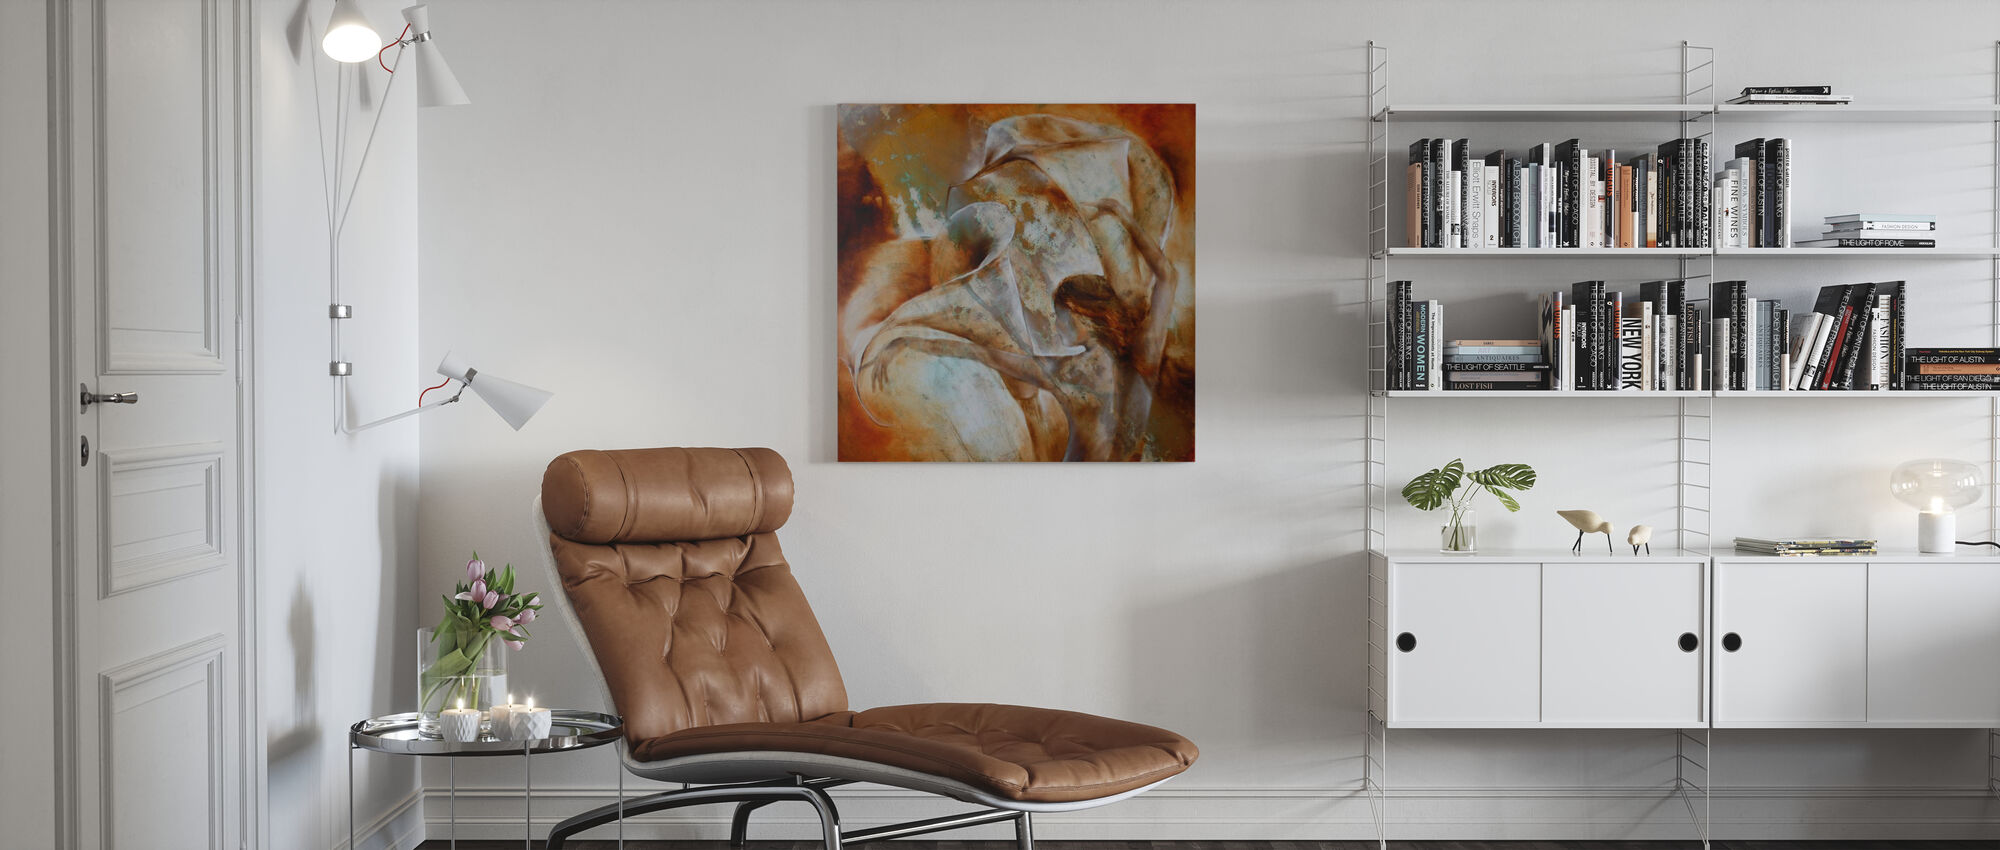 Allegro - Canvas print - Living Room